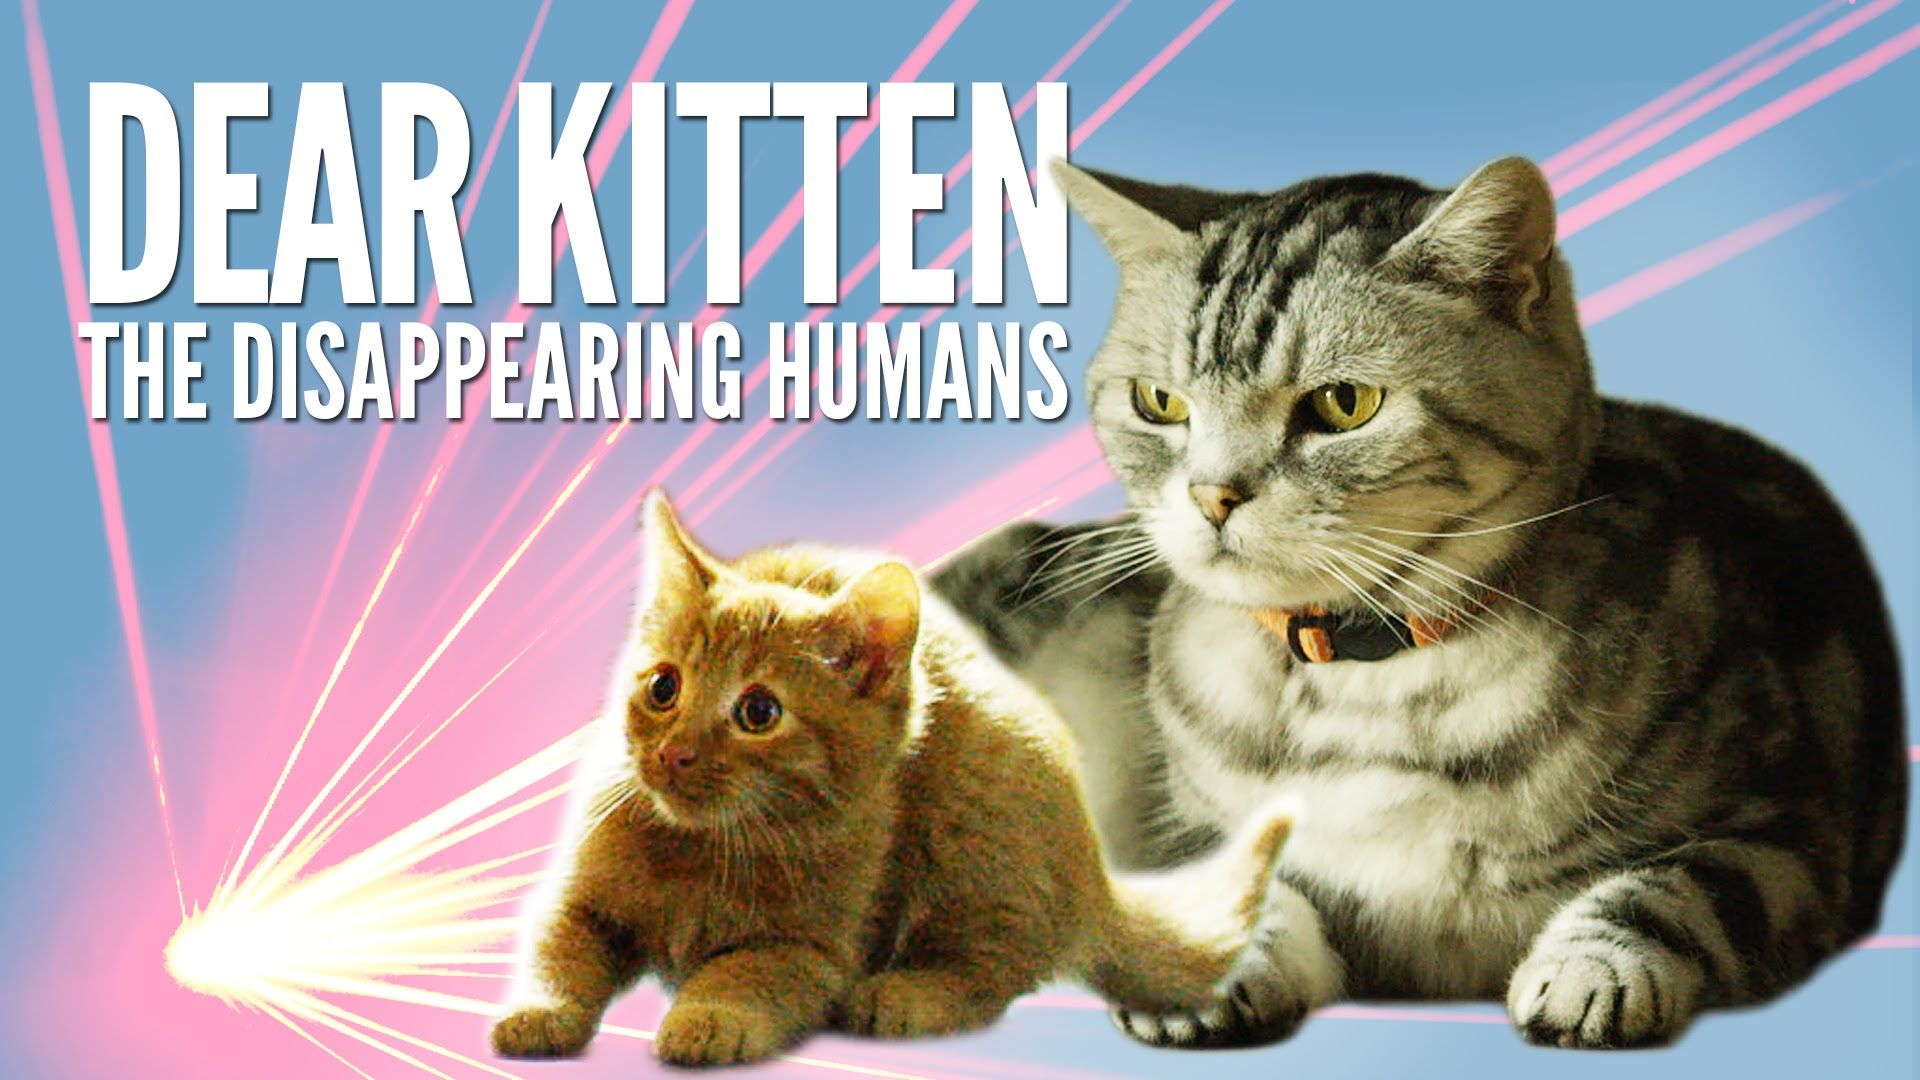 Dear Kitten The Disappearing Humans Purina Friskies Animal Antics Kitten Purina Friskies